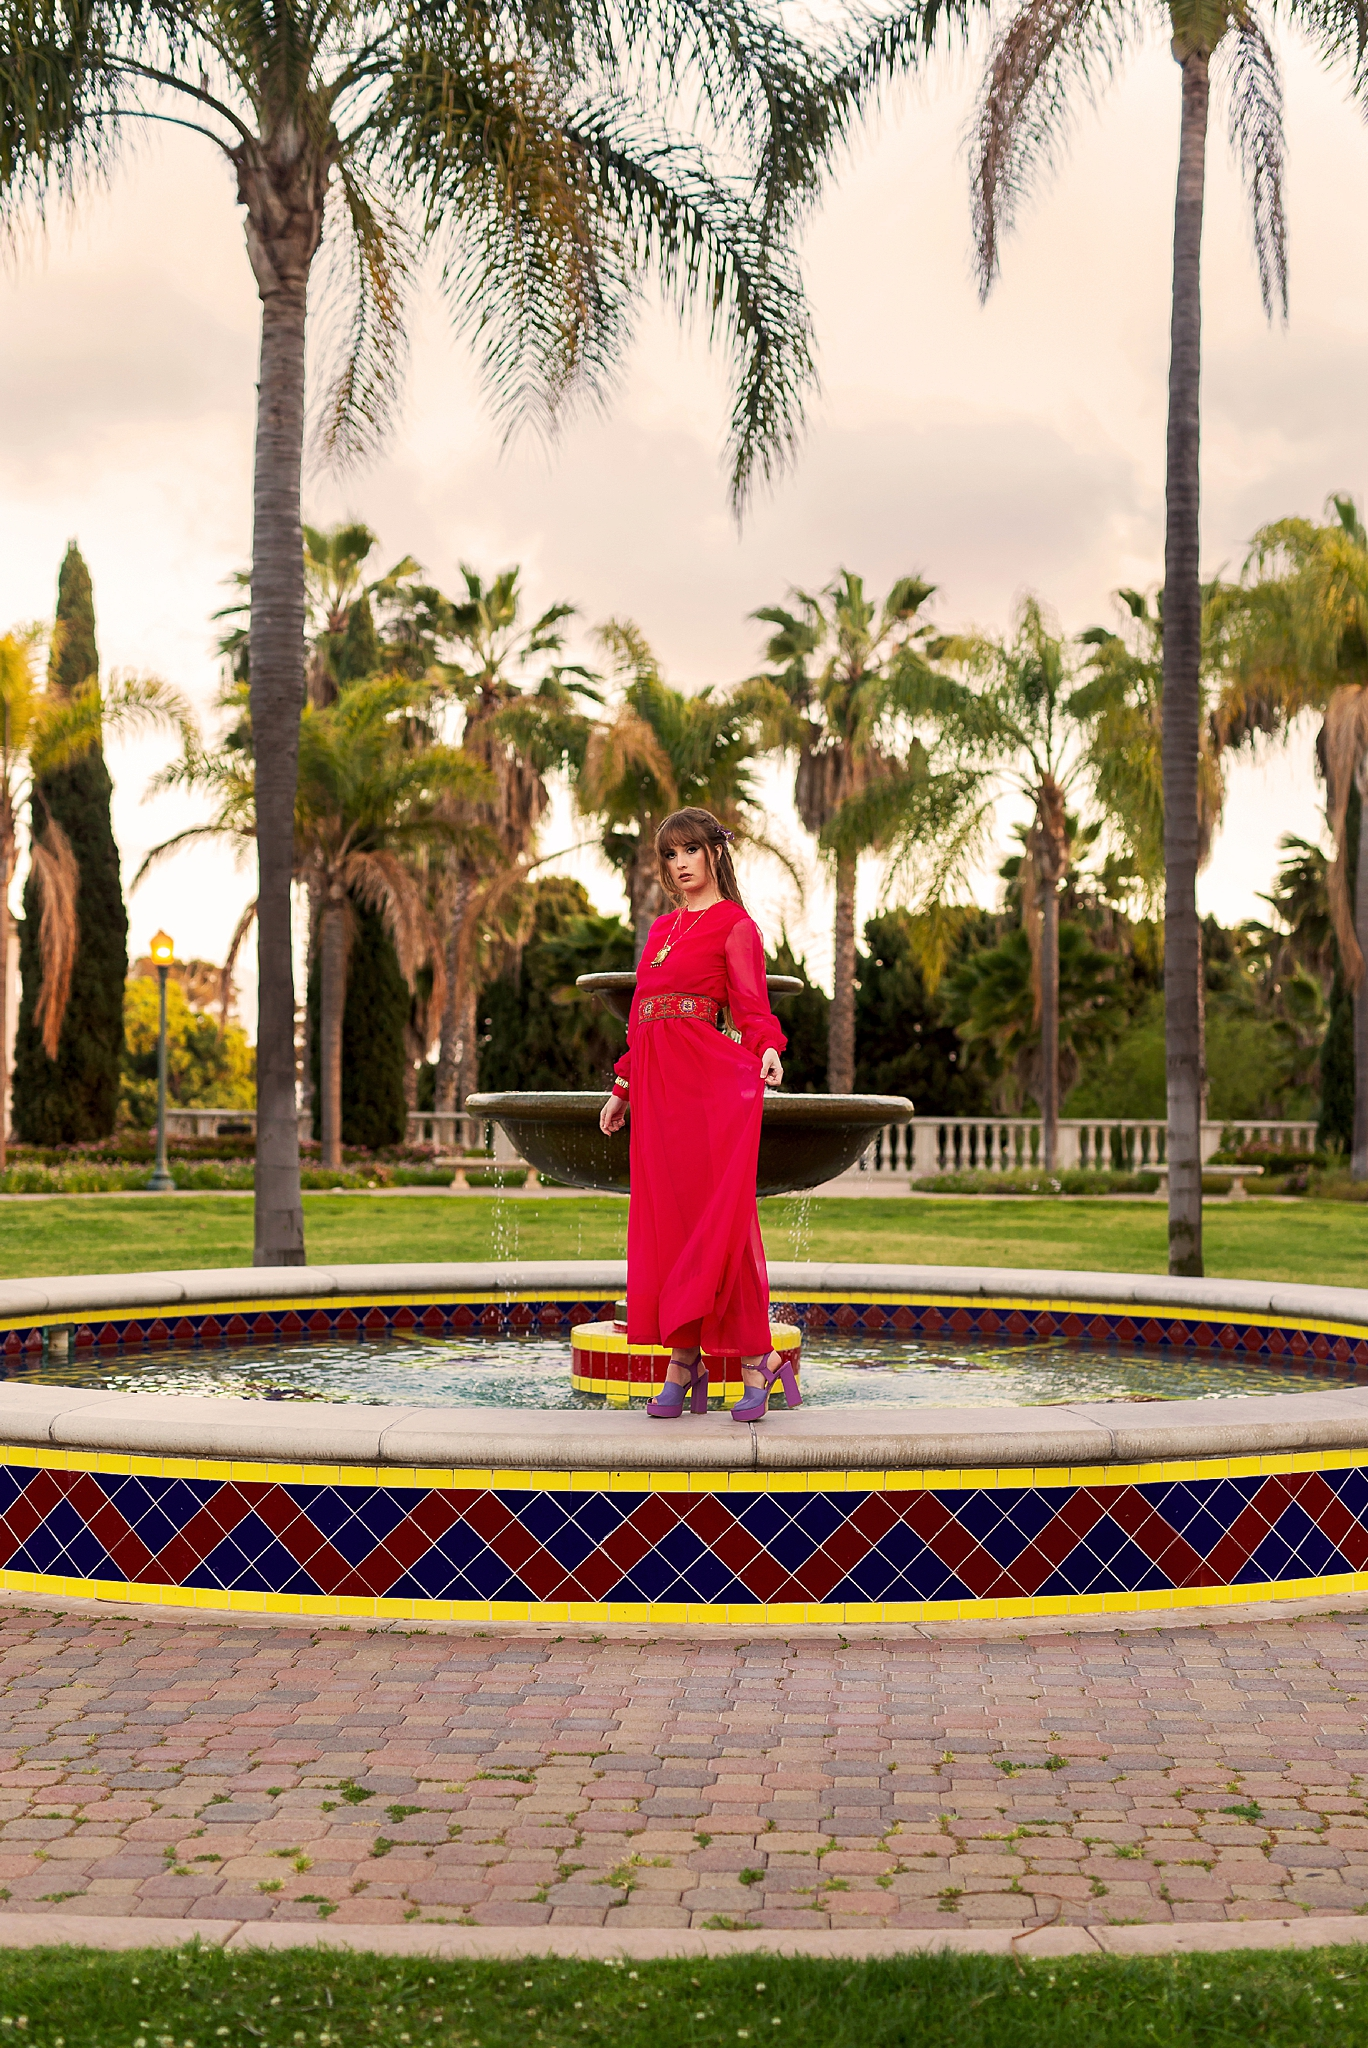 Laura Leigh Dunham modeling Surrealist Vintage clothing and accessories. Taken at Balboa Park in San Diego, California.